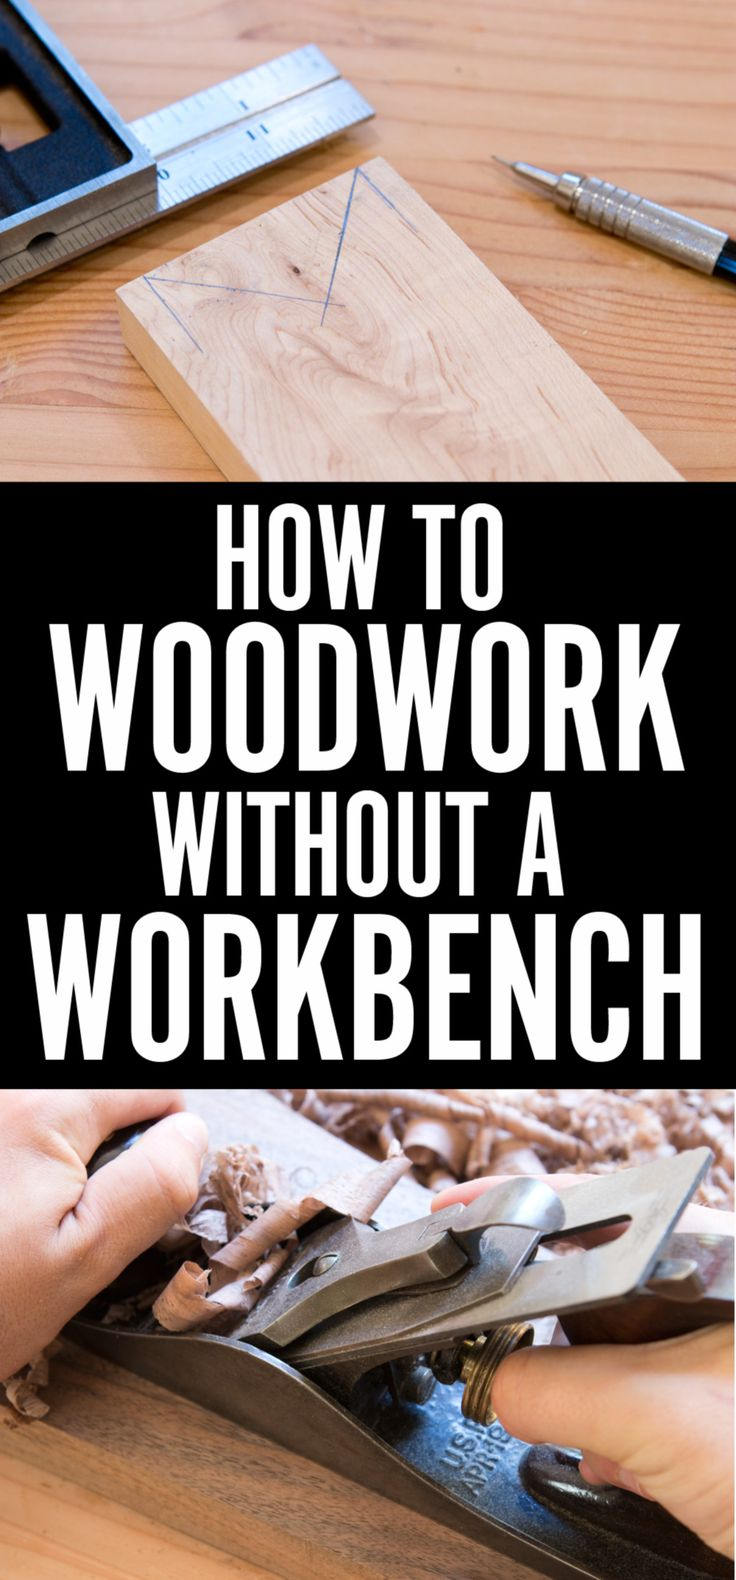 No Vise, No Workbench, No Downside: How you can Maintain Your Woodworking with a Easy Wood Batten